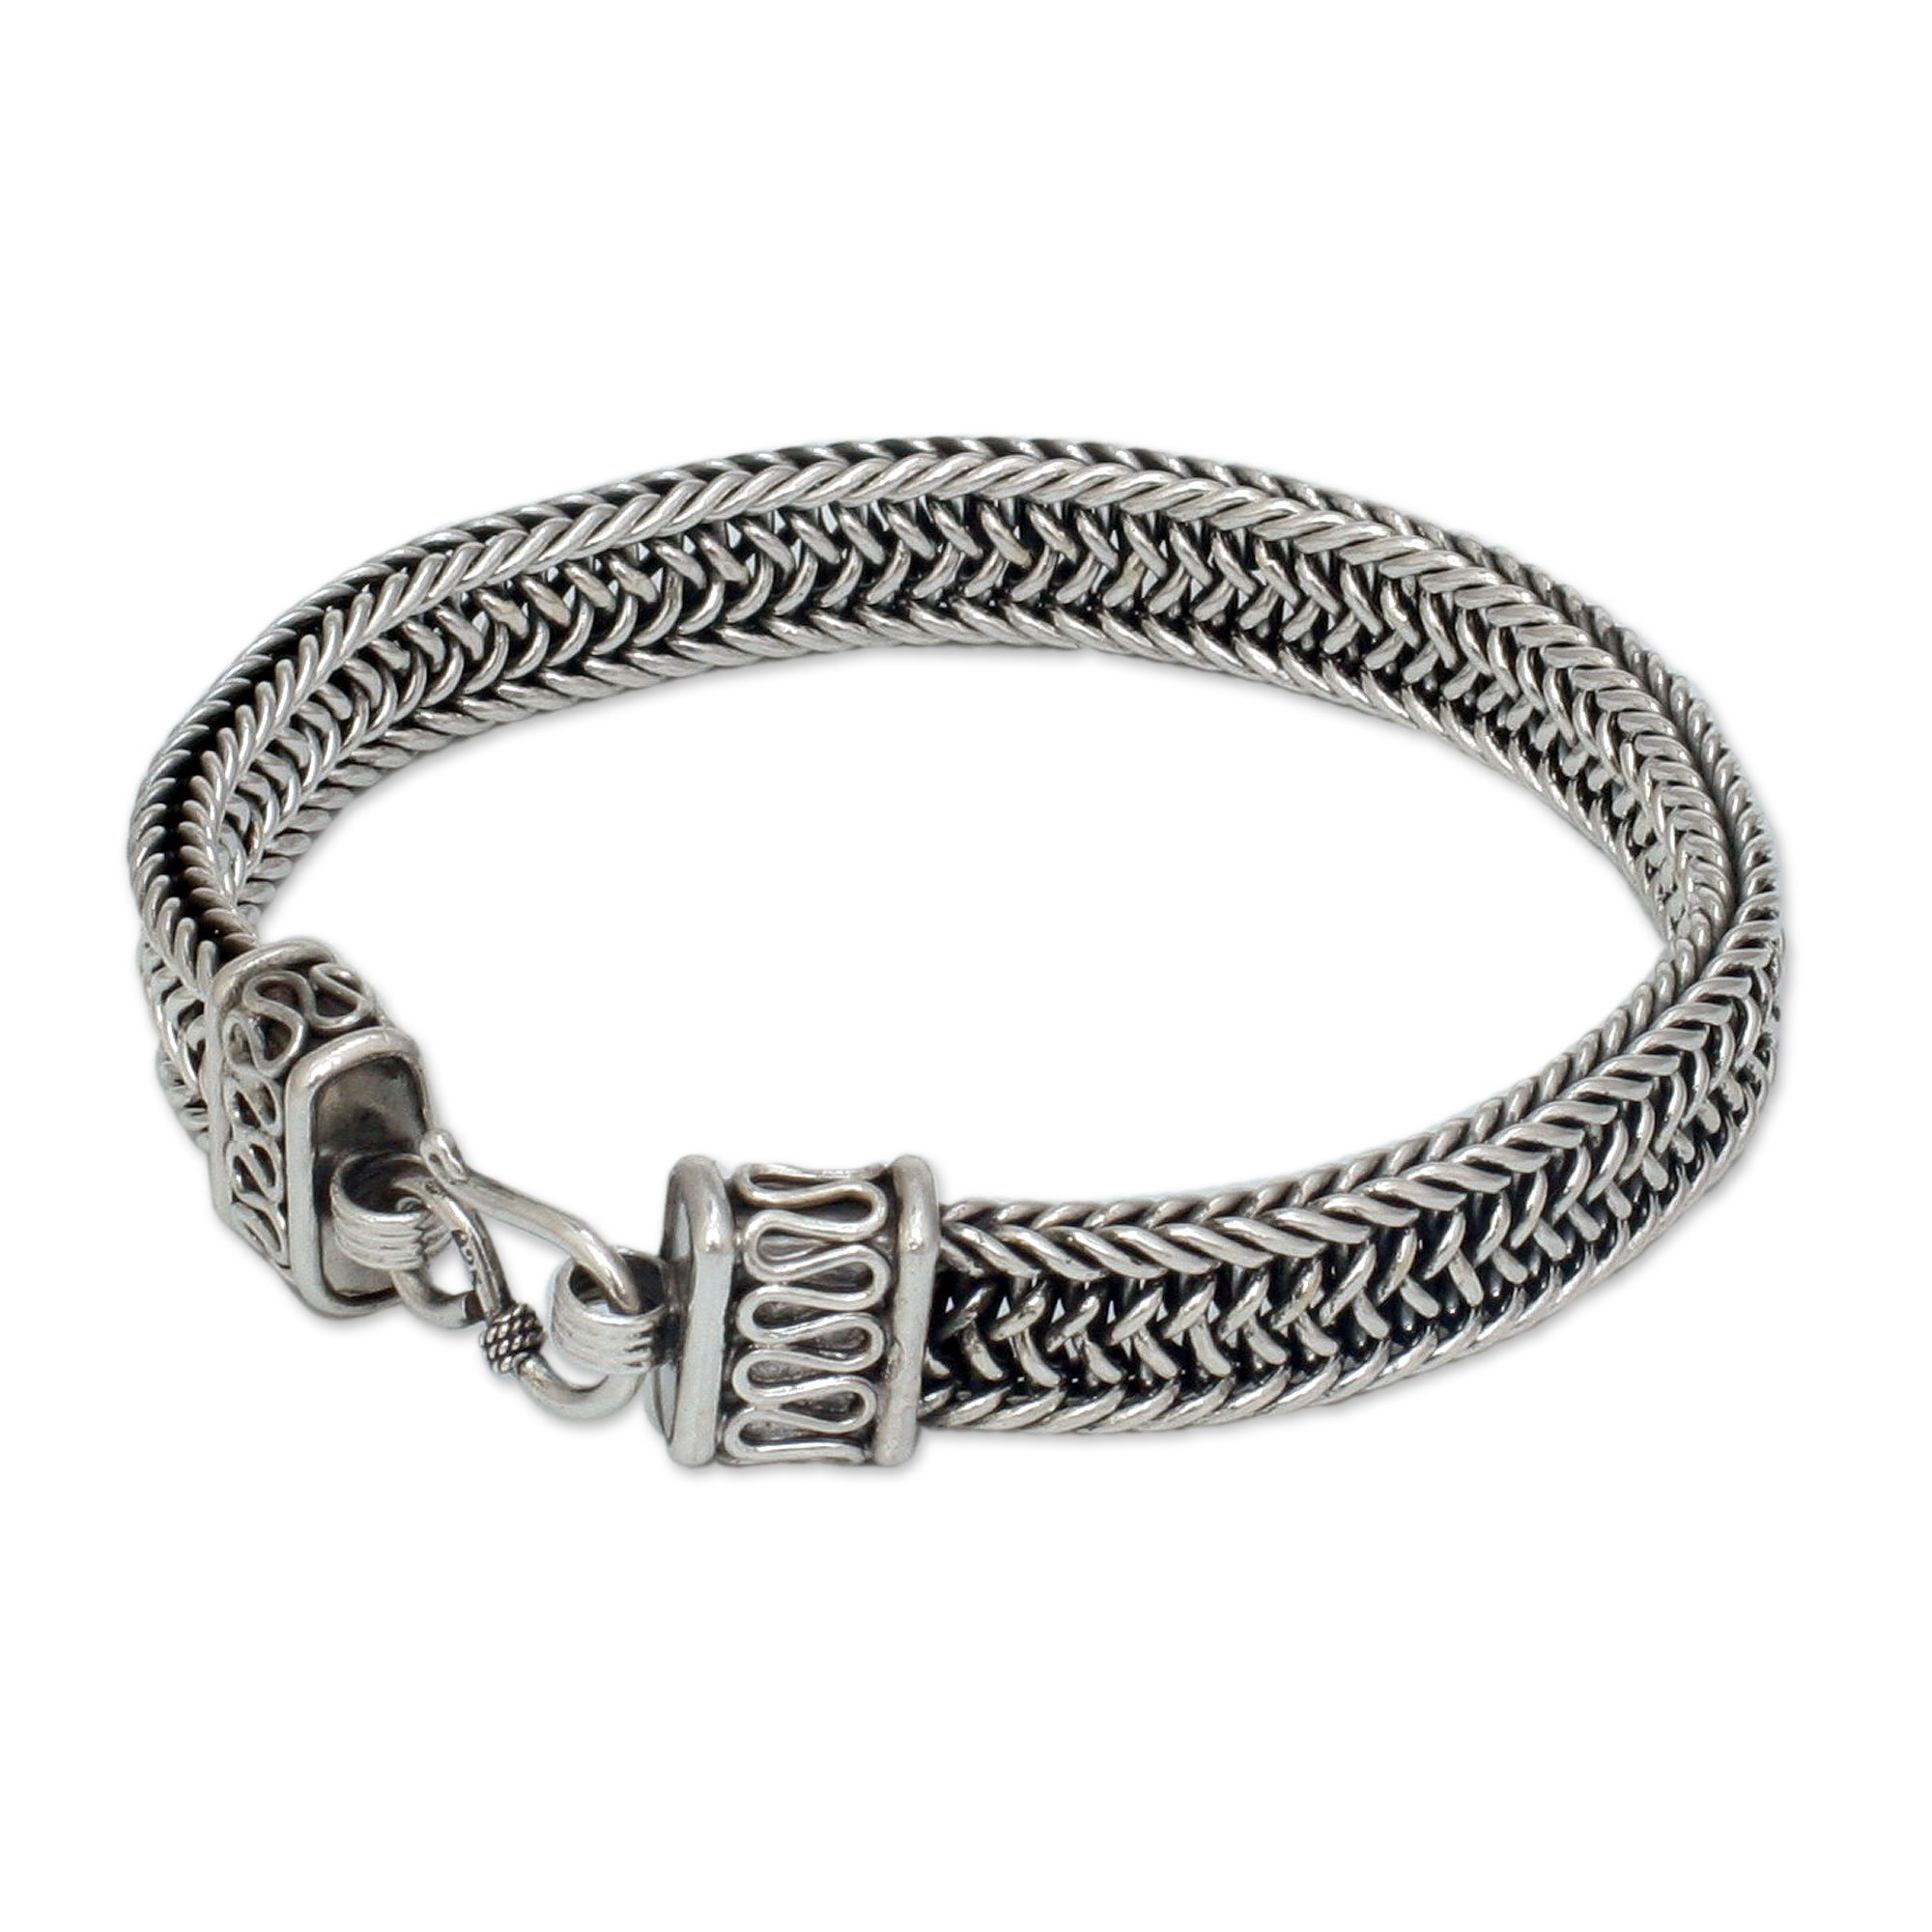 NOVICA .925 Sterling Silver Men's Woven Chain Bracelet, 8.5'', 'Kingdom'